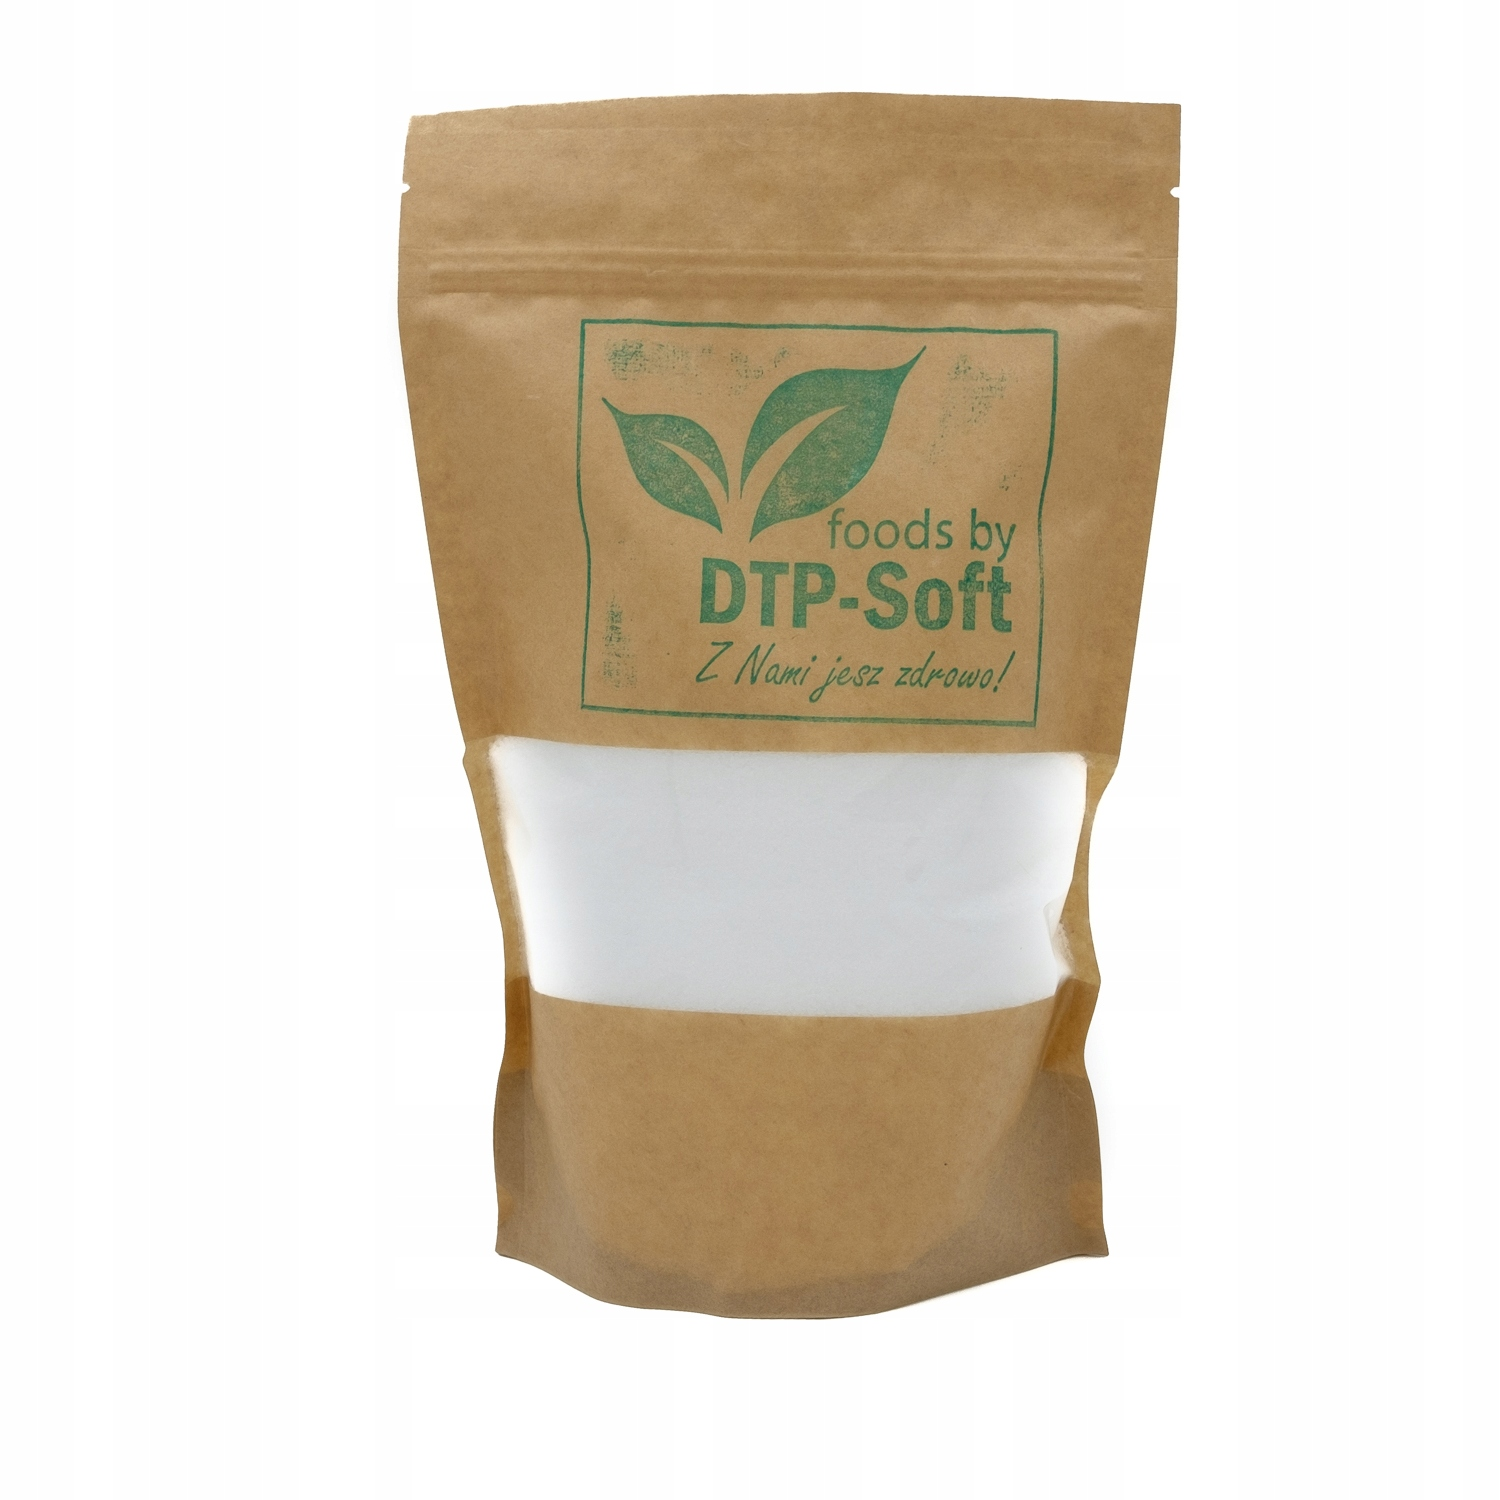 XYLITOL xylitol Danisco Finnish Healthy 1kg Foods